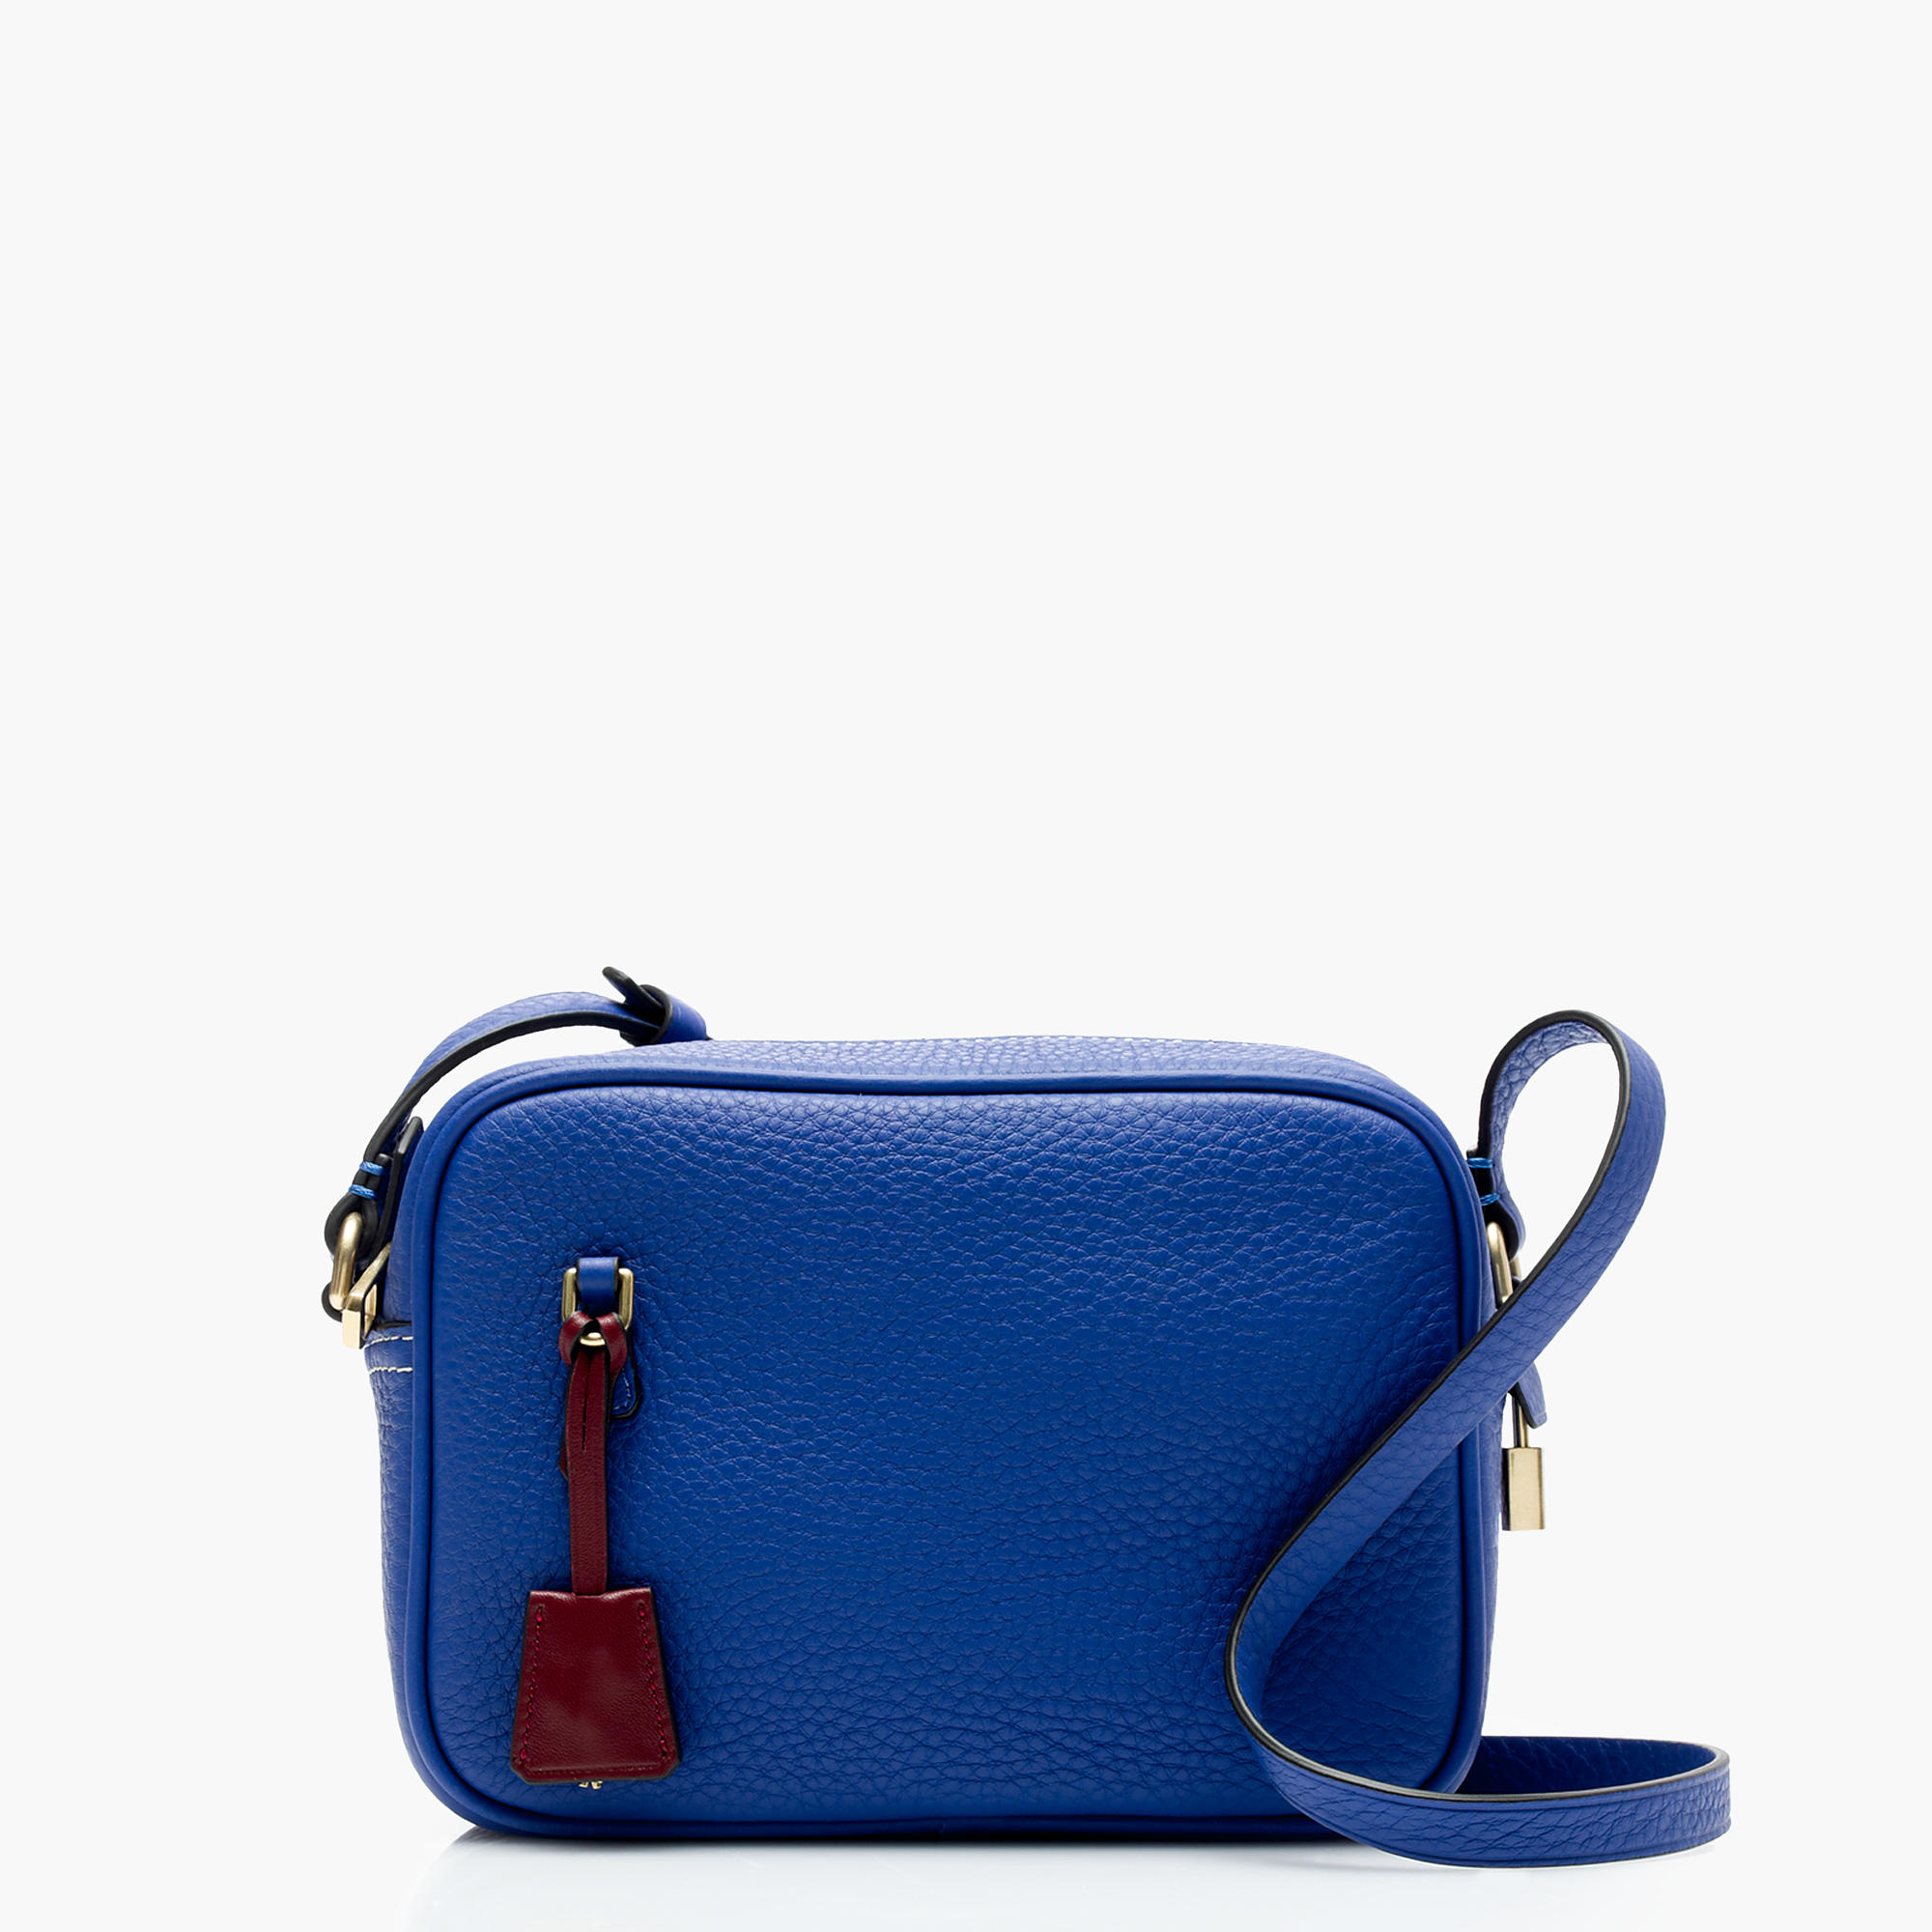 J.Crew Signet Bags in Italian Leather, Cobalt Sea